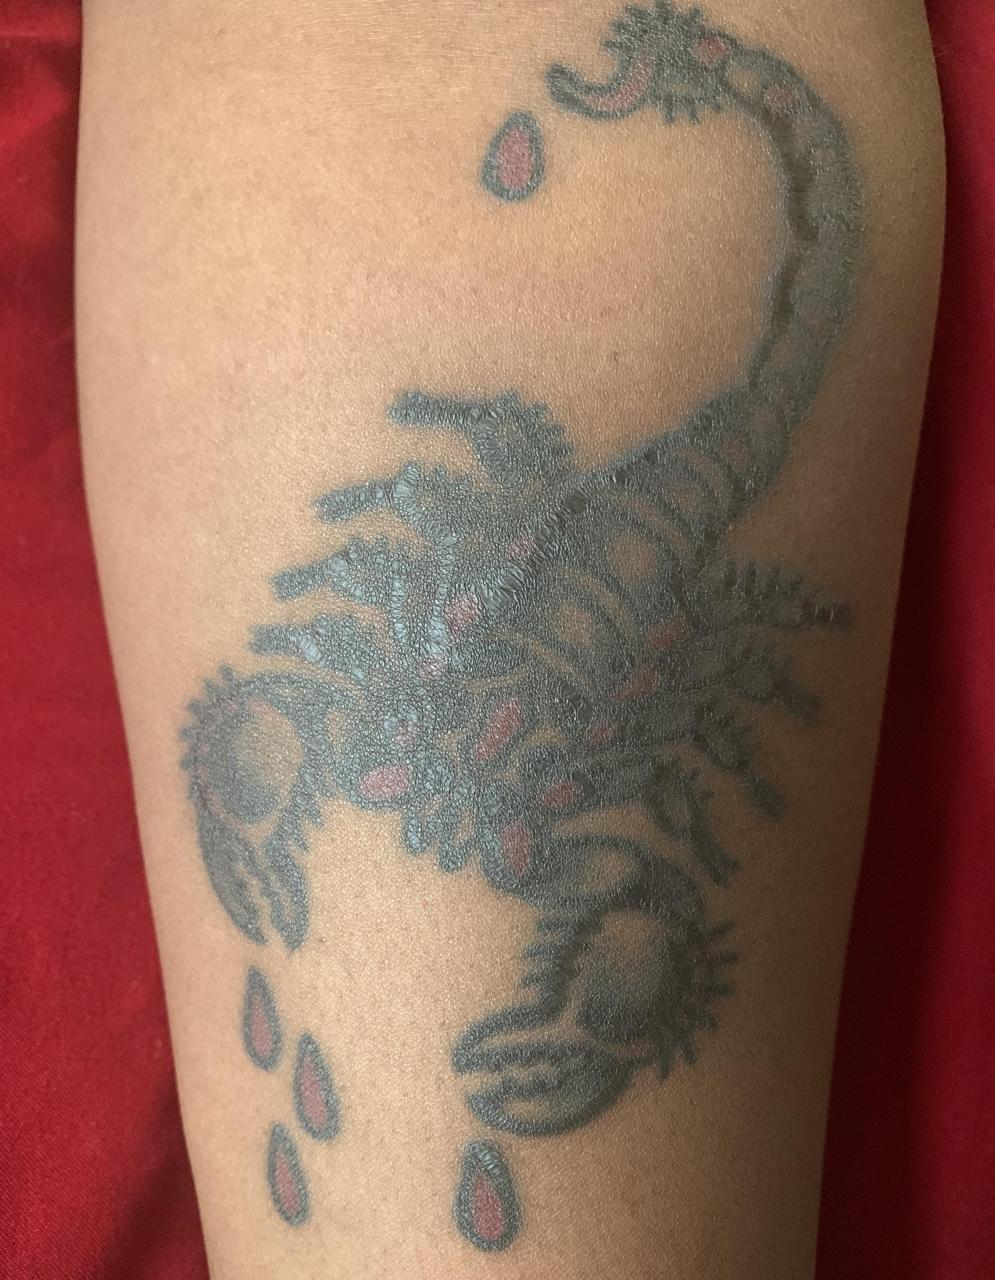 Thoughts on my traditional scorpion (done July 26)? I've been contemplating going back to my artist to have him check it out. The tail's blown out and a good portion is still raised/scarred...